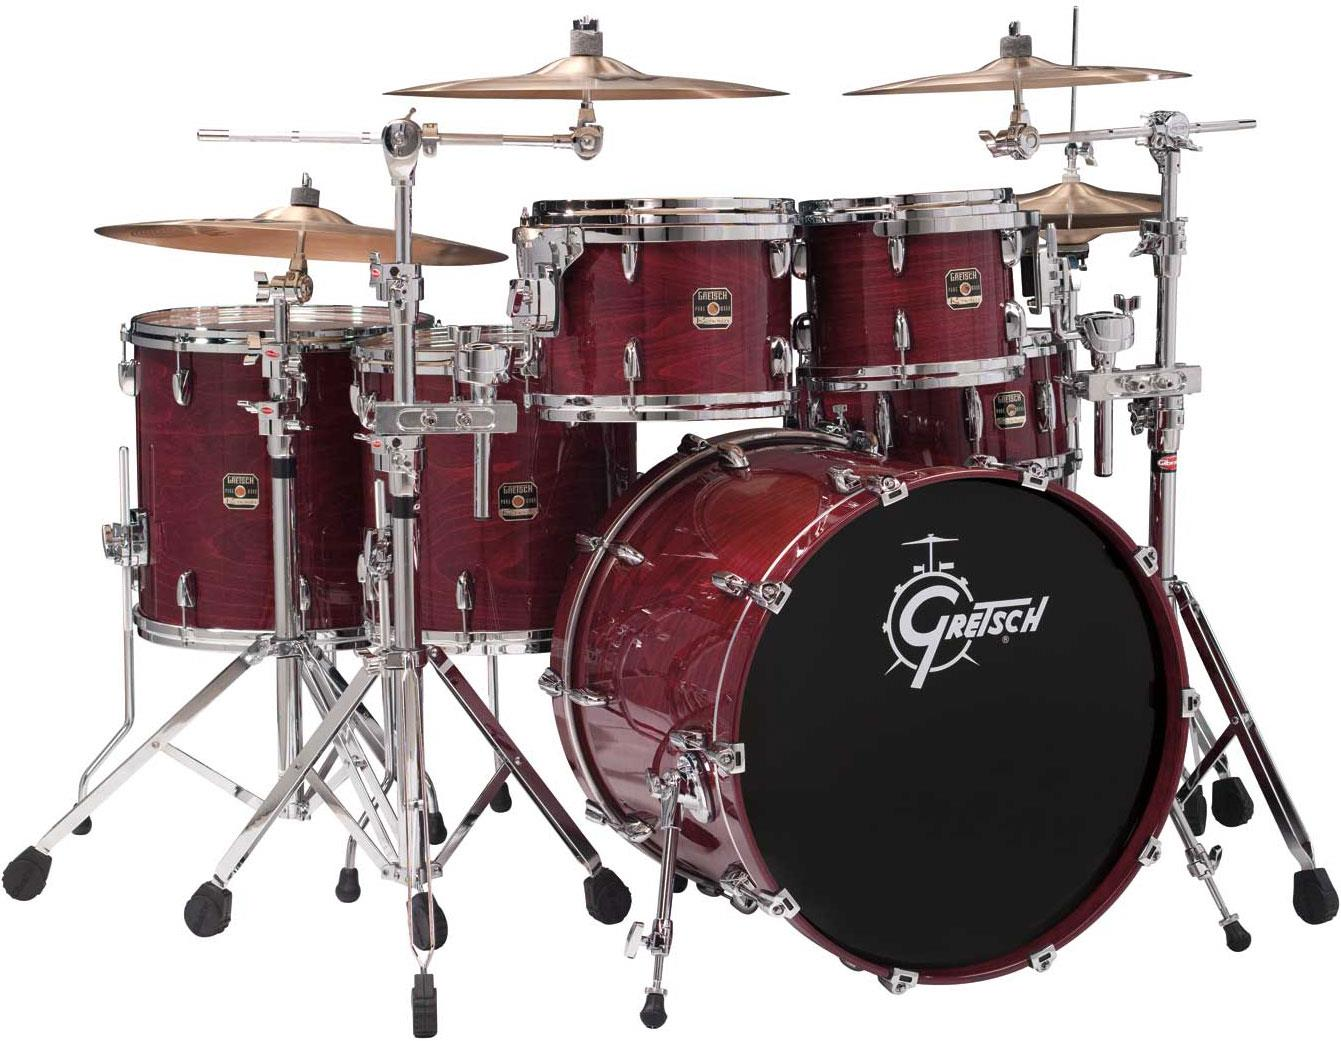 Gretsch Drums Renown Purewood Beech Limited Edition Dark